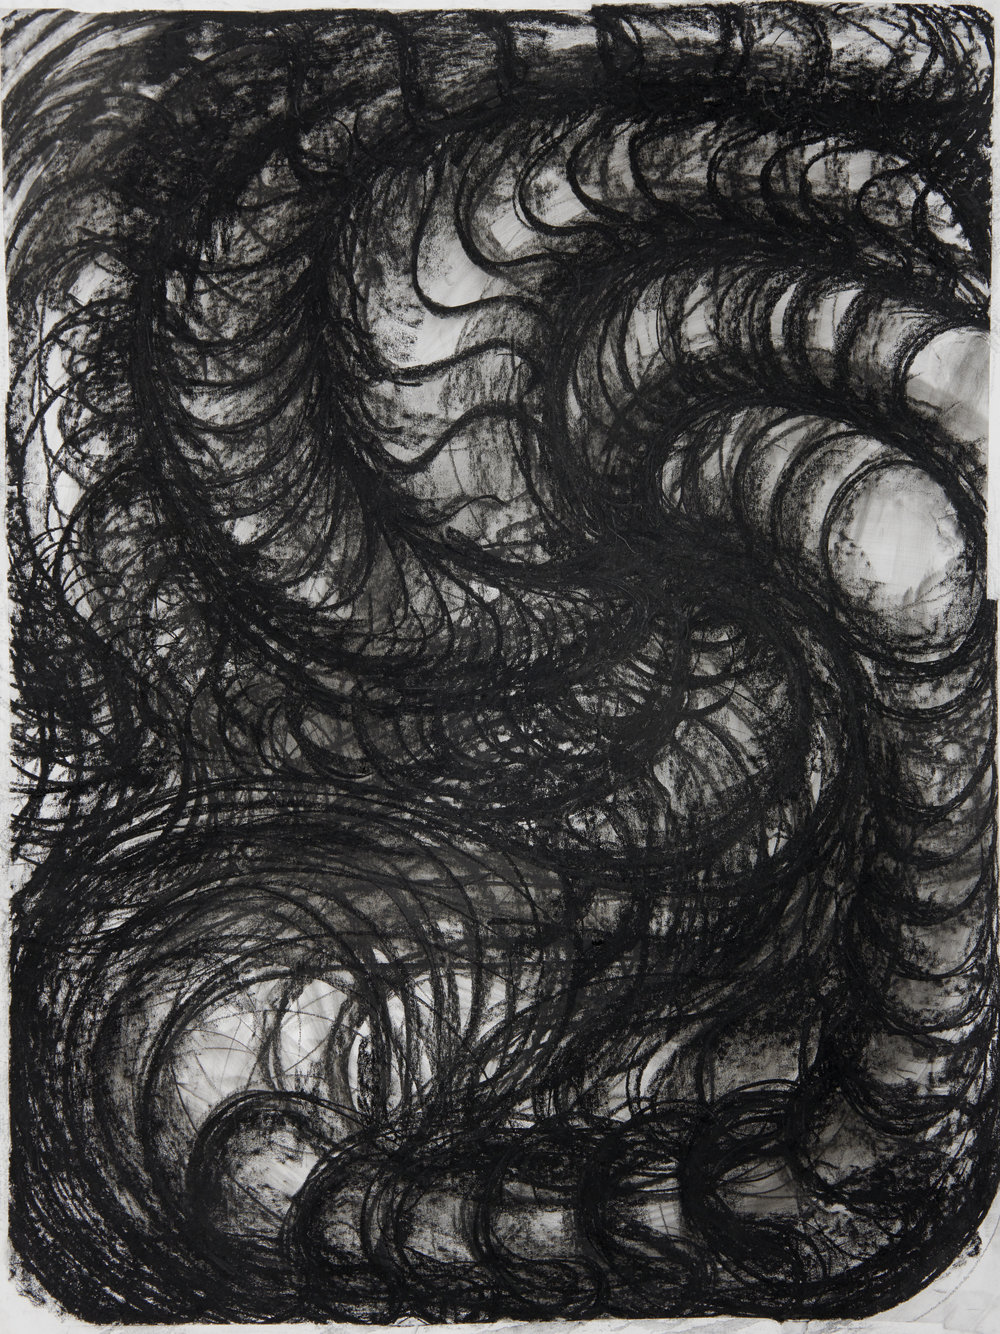 Vortex Study, 2018 135x 100 cm charcoal on paper